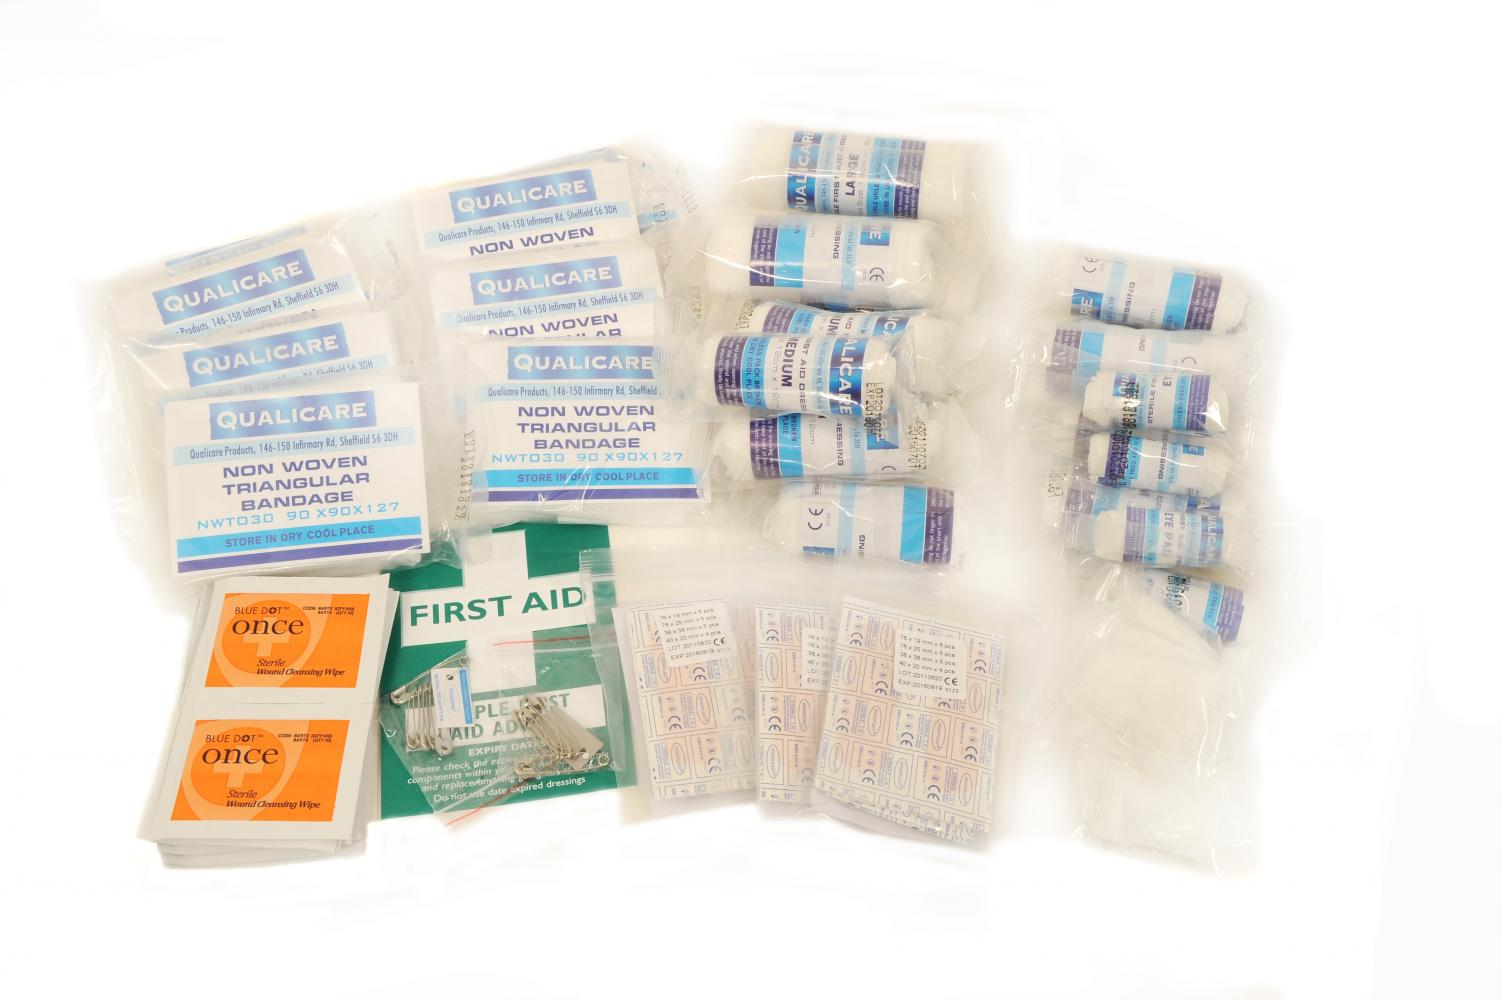 Qualicare First Aid Kit for 1 - 50 People Refill